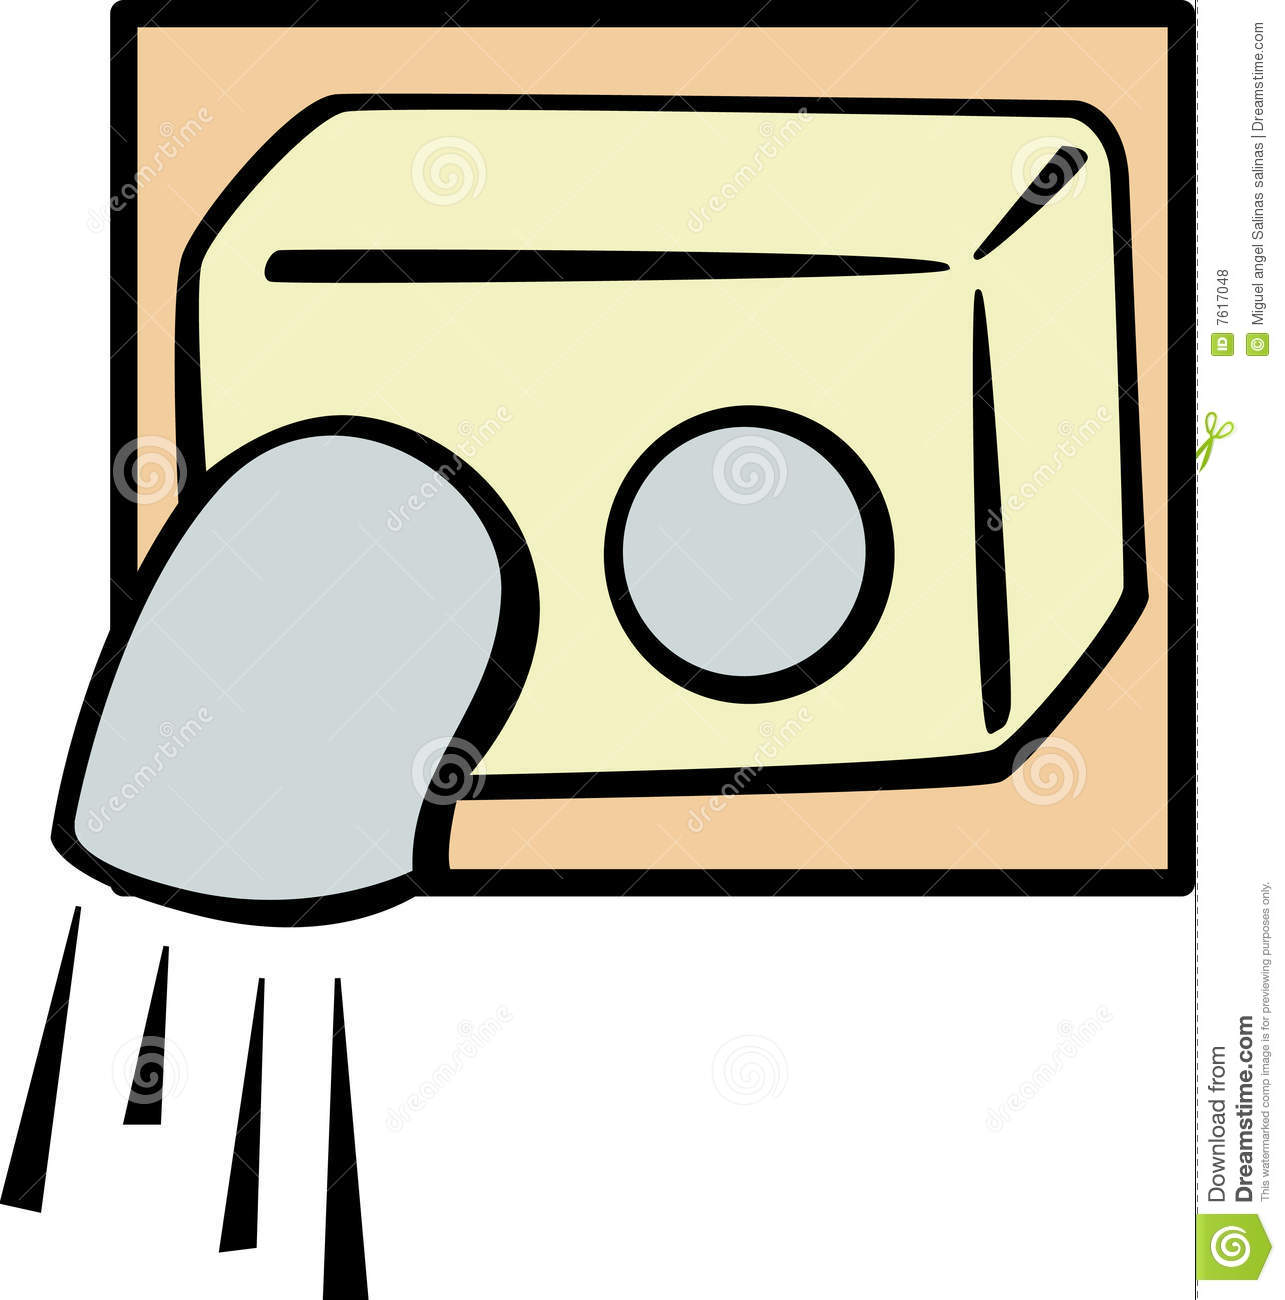 Drying Clipart | Clipart Panda - Free Clipart Images